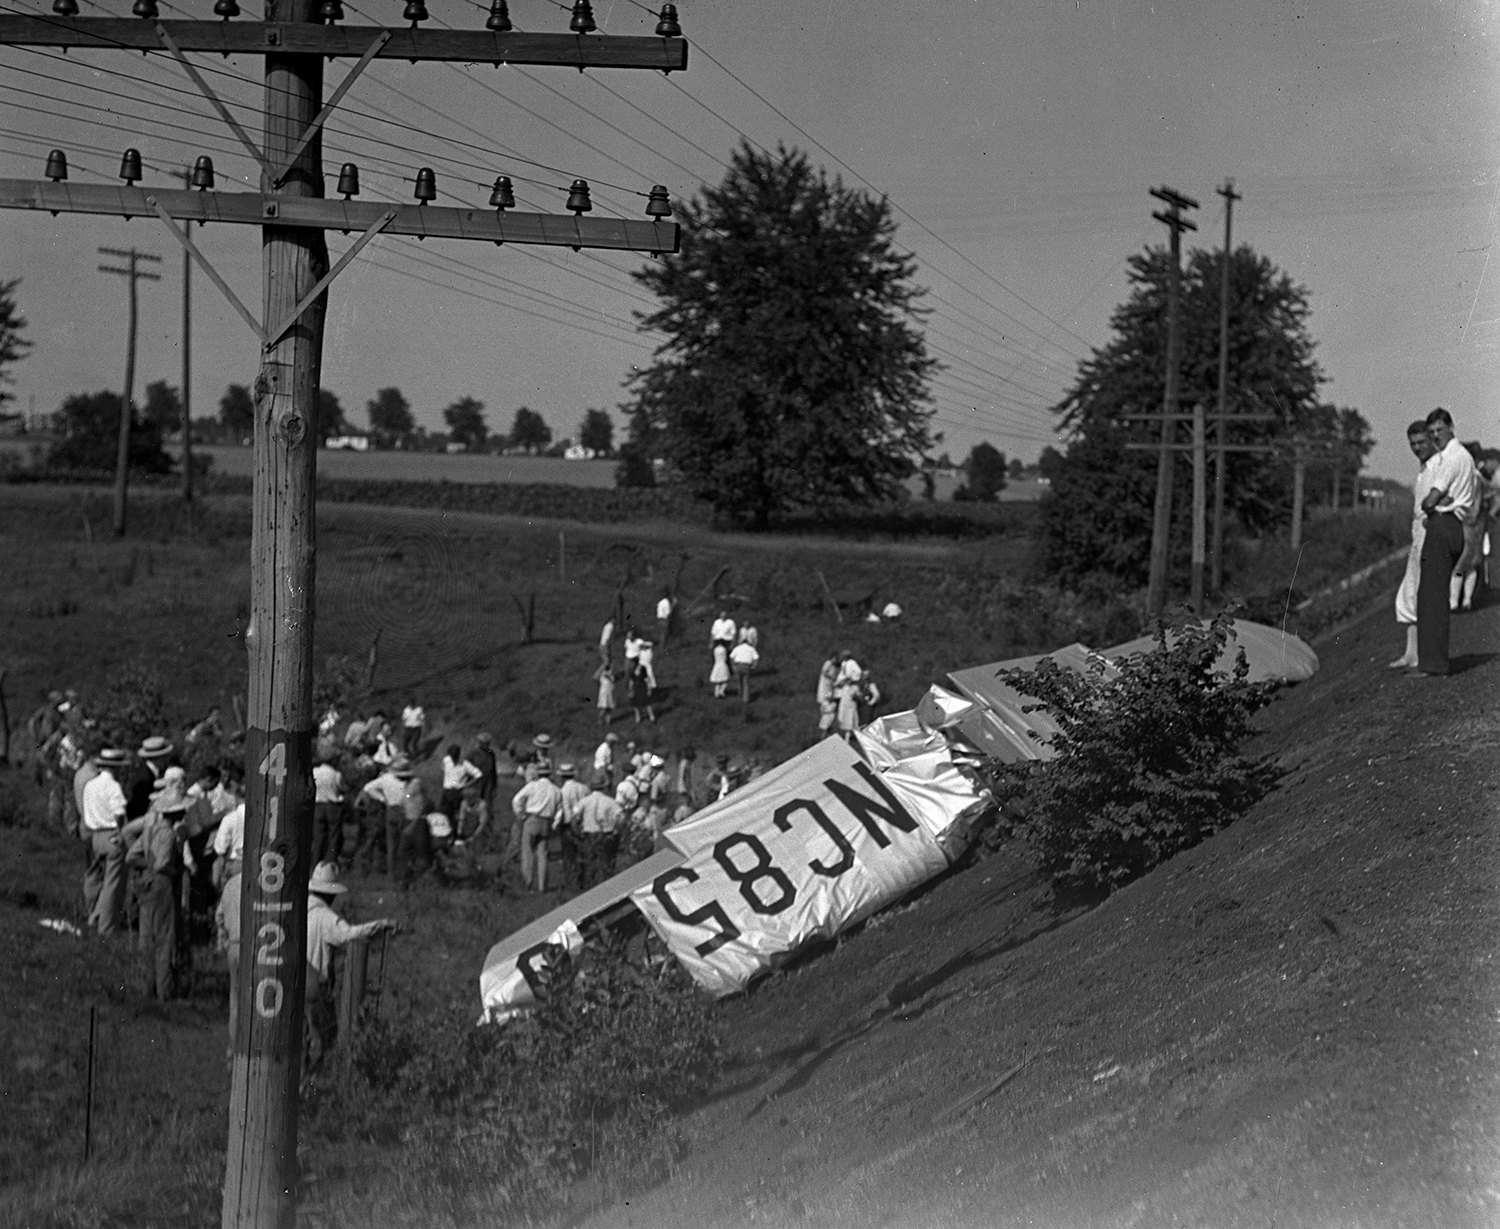 Two were killed when a planed crashed into a railroad embankment on the south edge of the municipal airport, June 28, 1930. File/The State Journal-Register